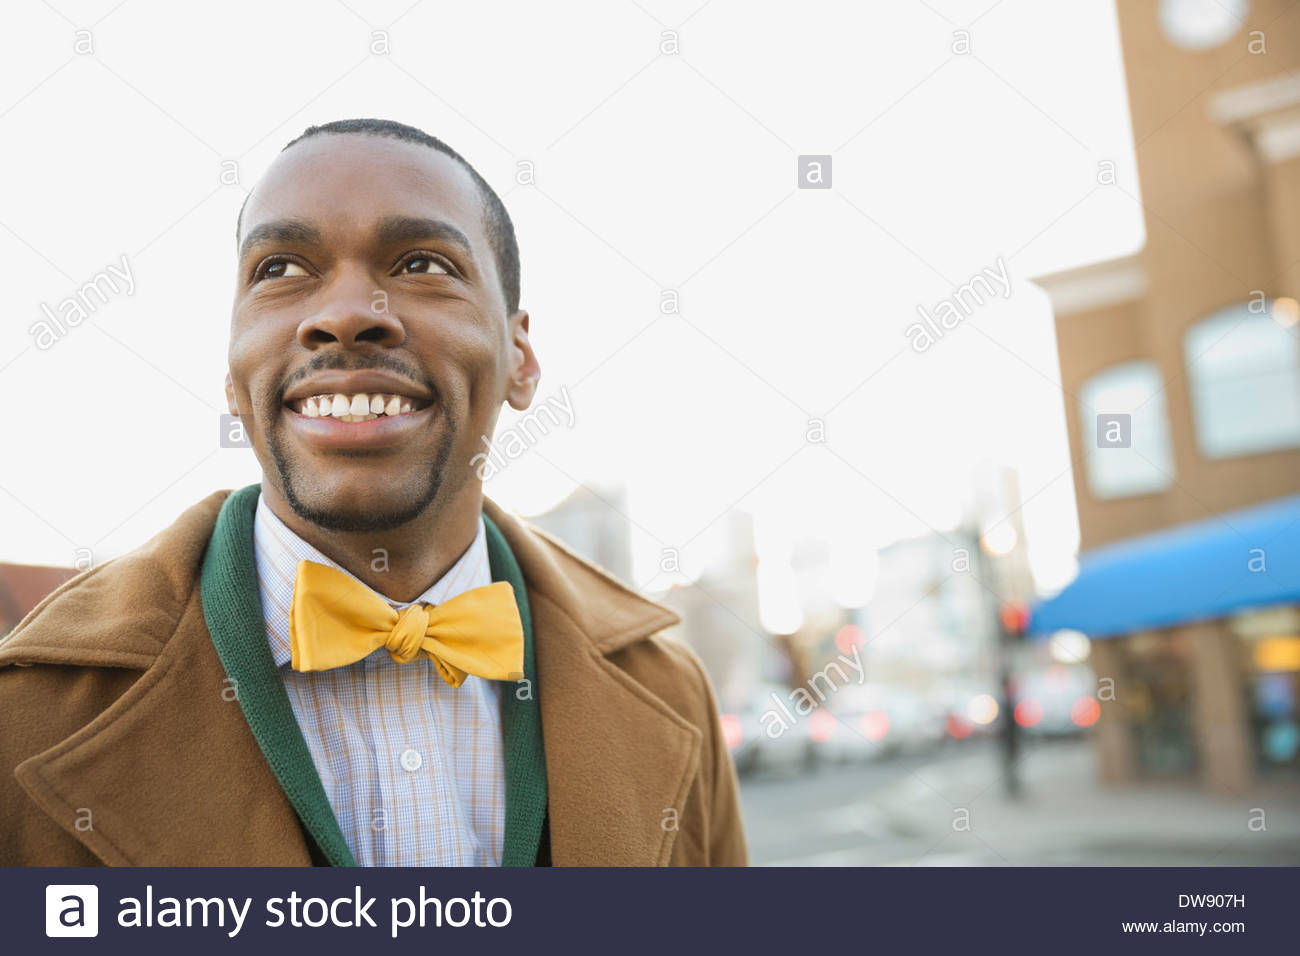 Smiling man outdoors wearing bow tie - Stock Image